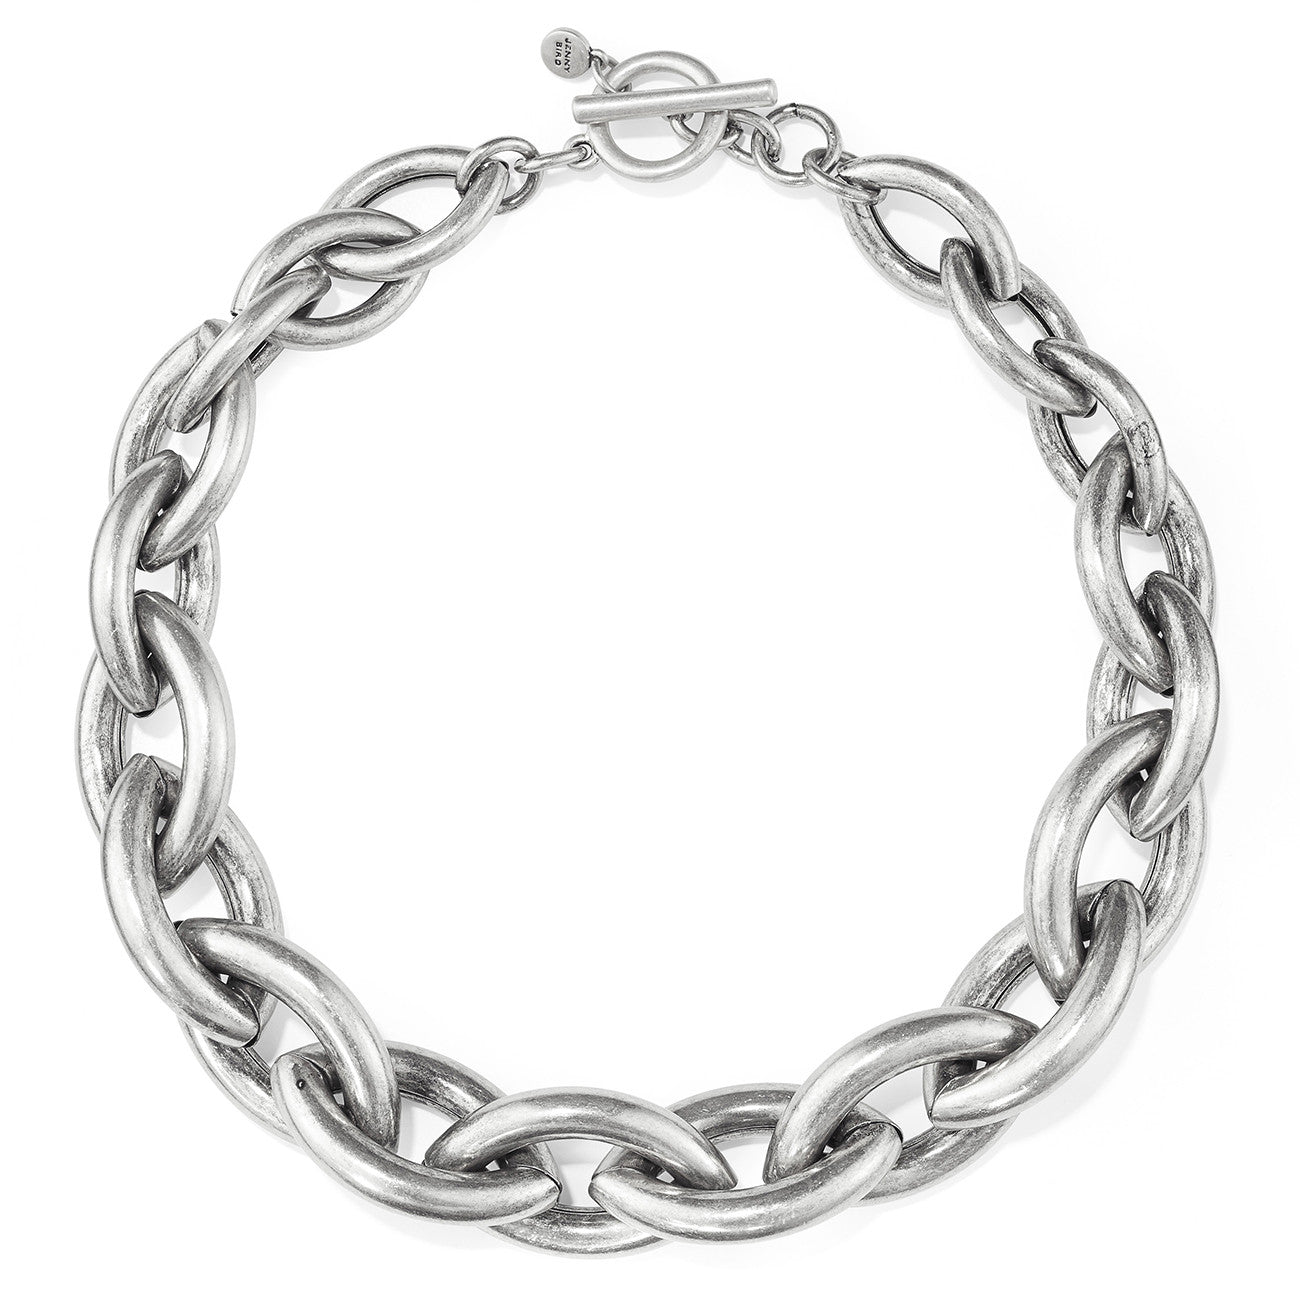 Sloane Collar by Jenny Bird in Oxidized Silver